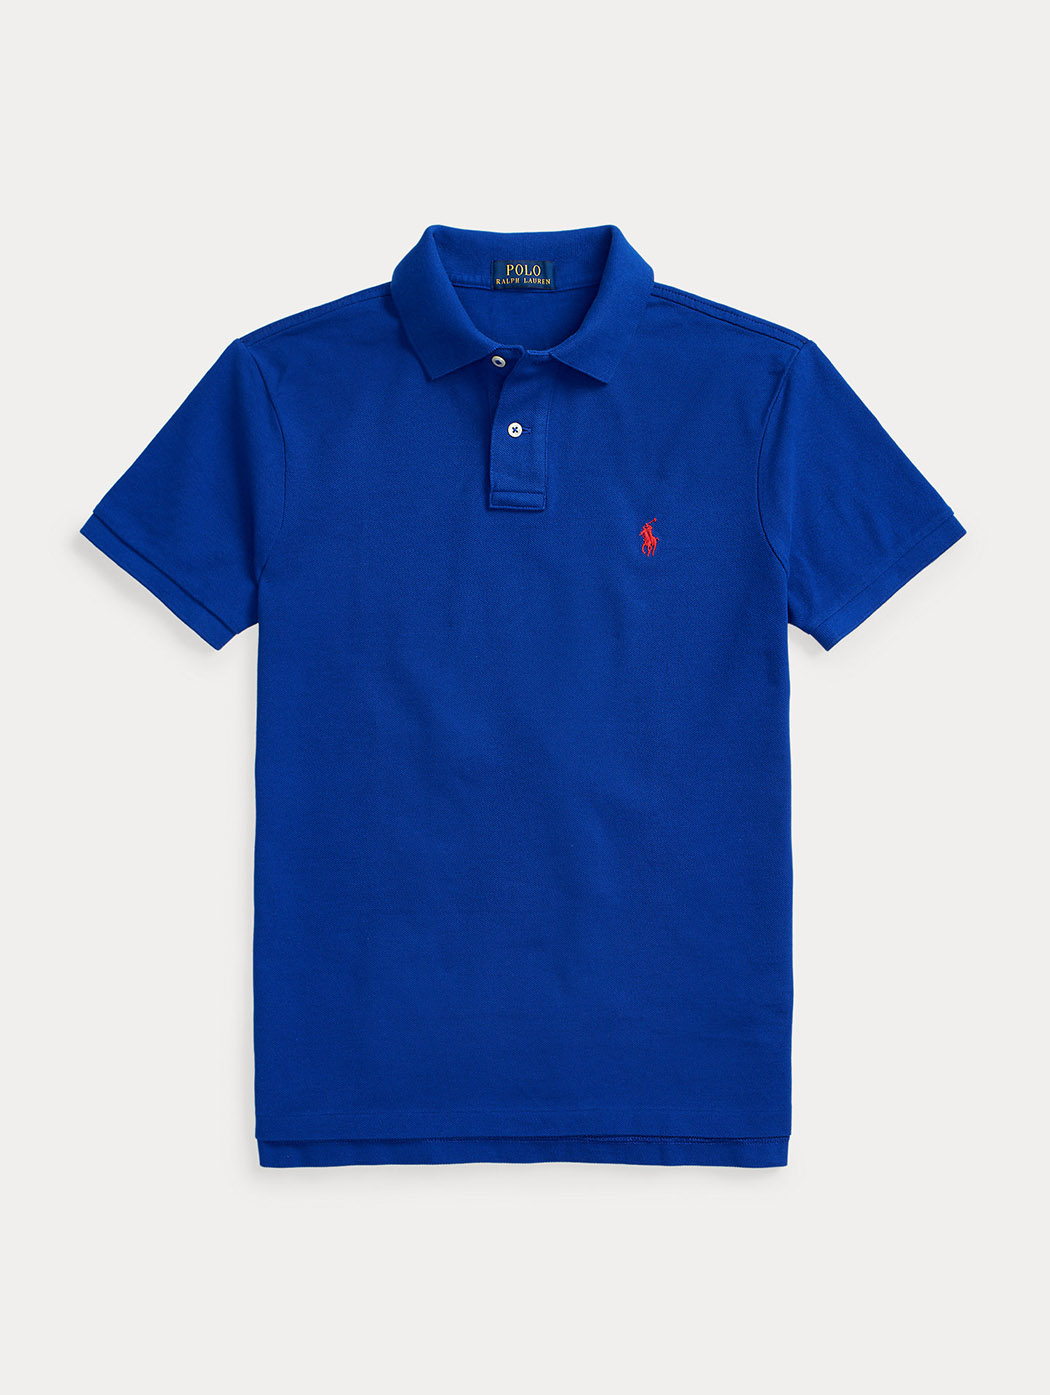 Polo in piqué Classic-Fit 71079 001 POLO